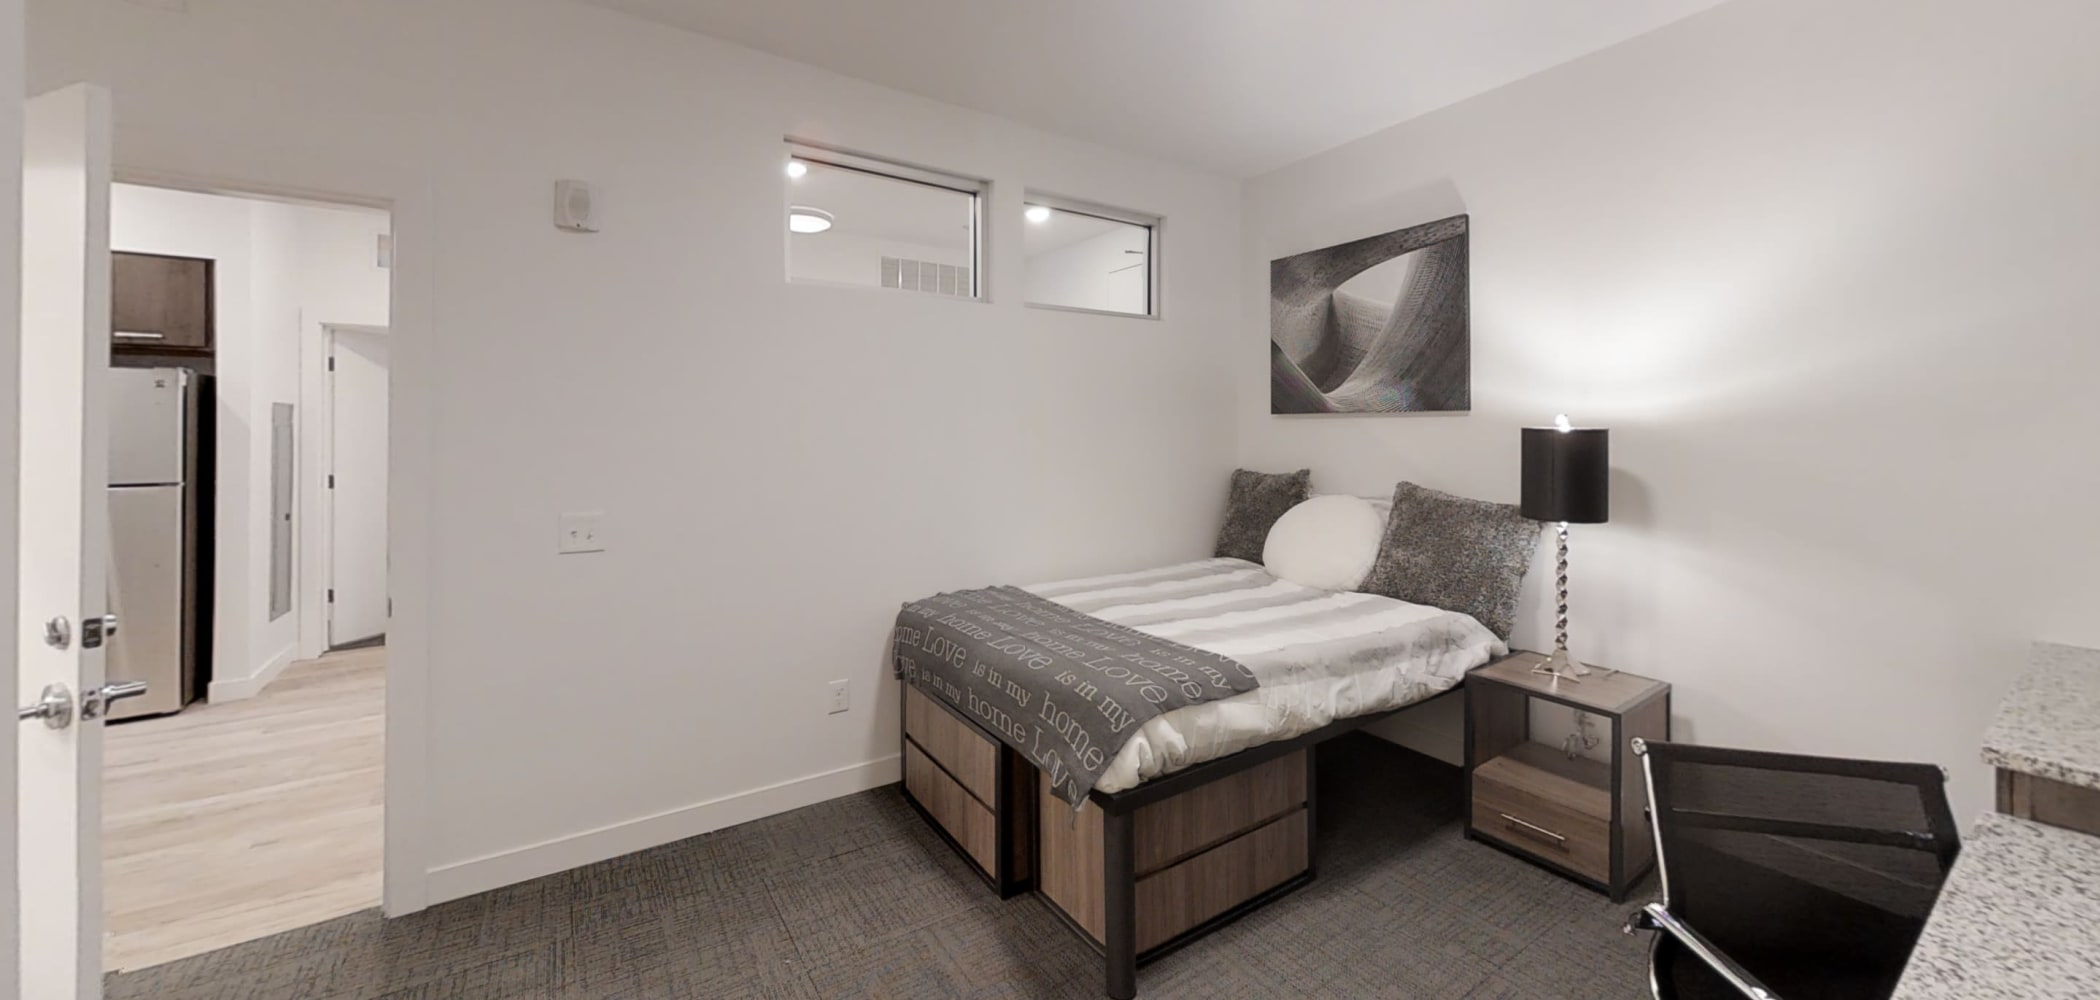 Very spacious bedroom with lots of storage under the bed at The View on Pavey Square in Columbus, Ohio